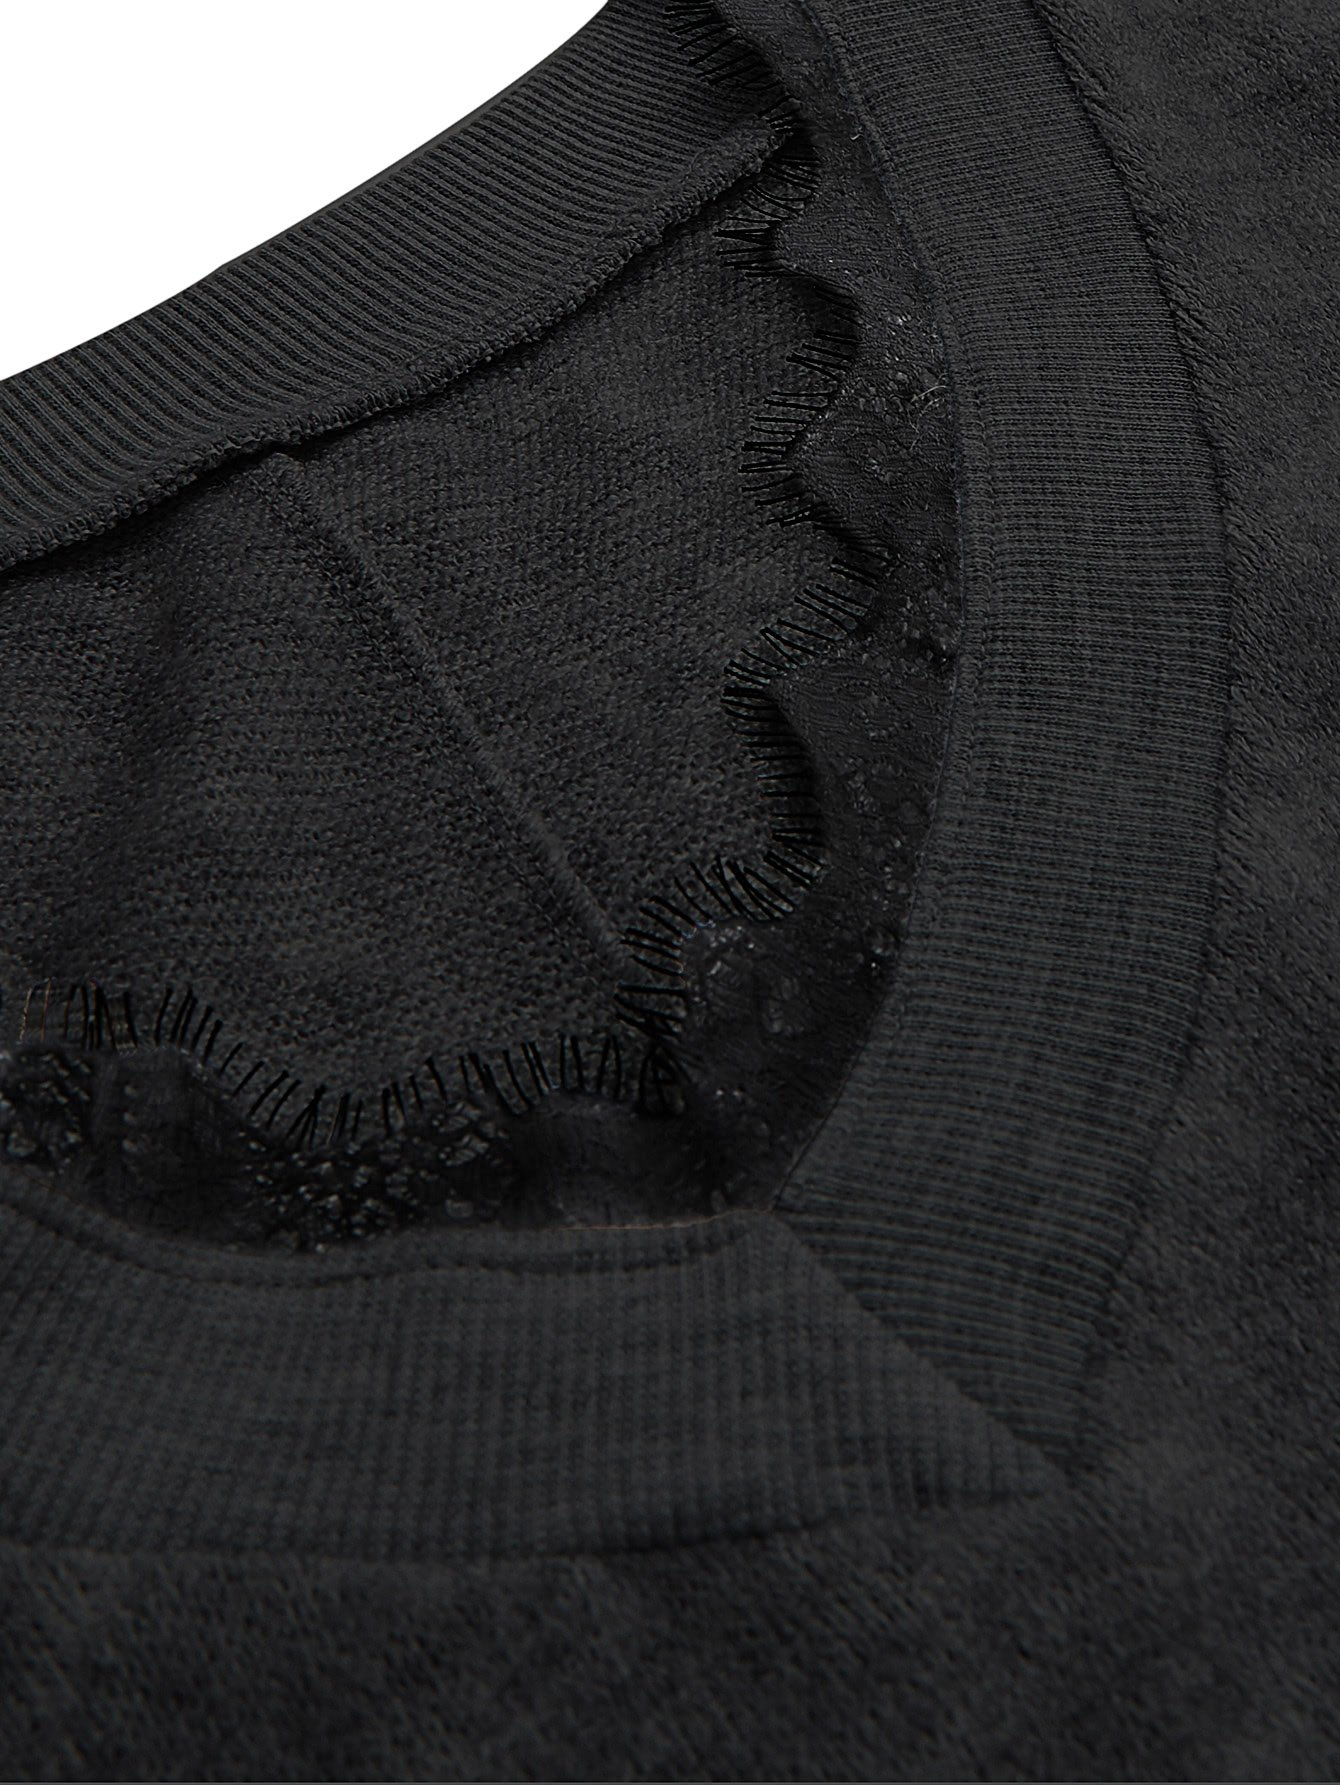 Verdusa Women's Batwing Sleeve Sweaters Jumper Eyelash Lace Pullover Tops Black-1 L by Verdusa (Image #6)